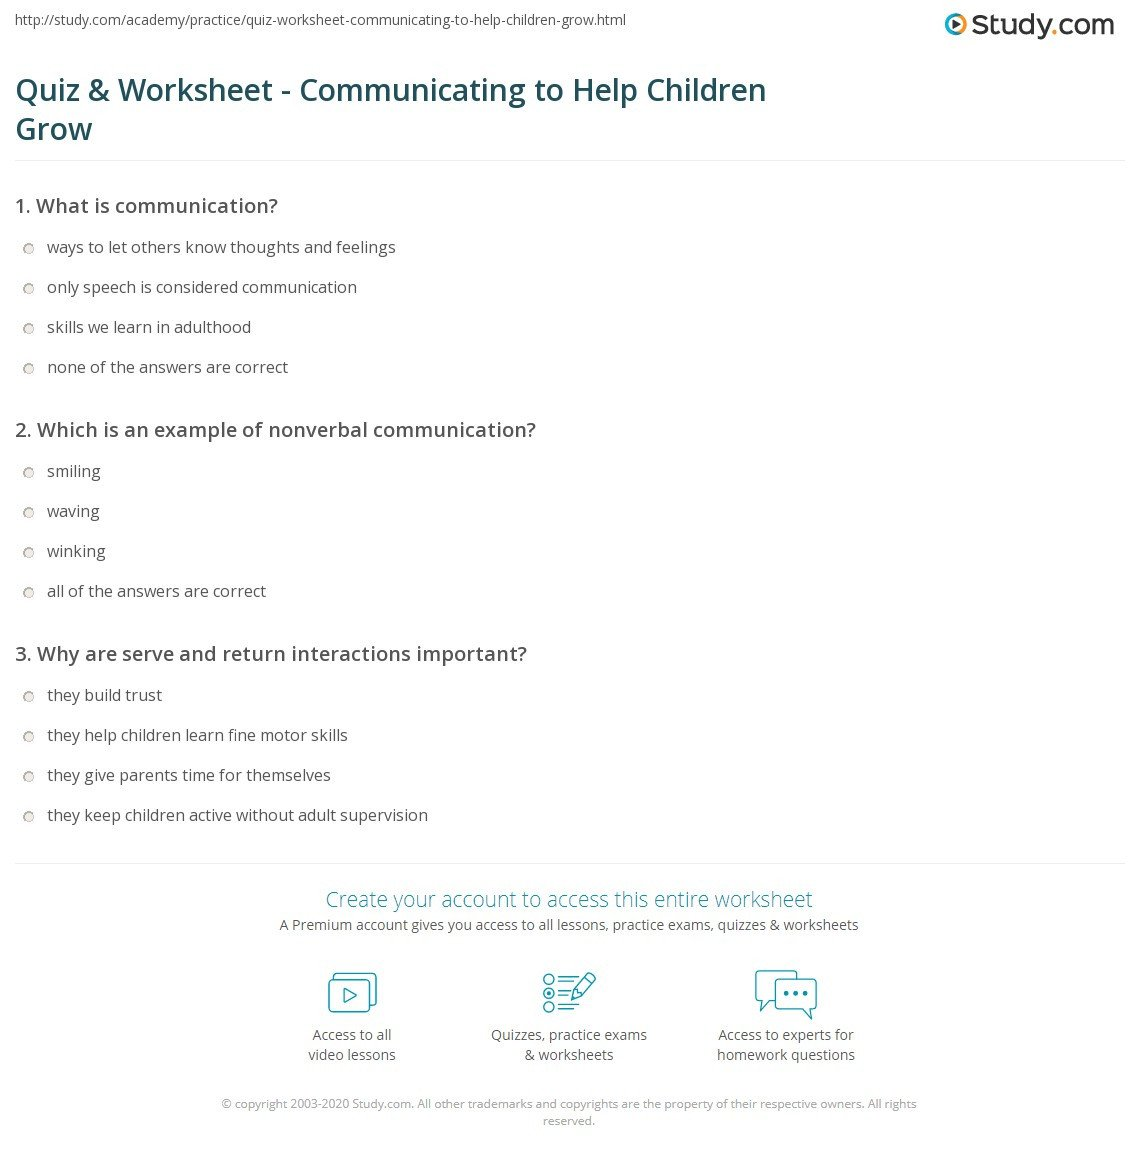 quiz worksheet municating to help children grow